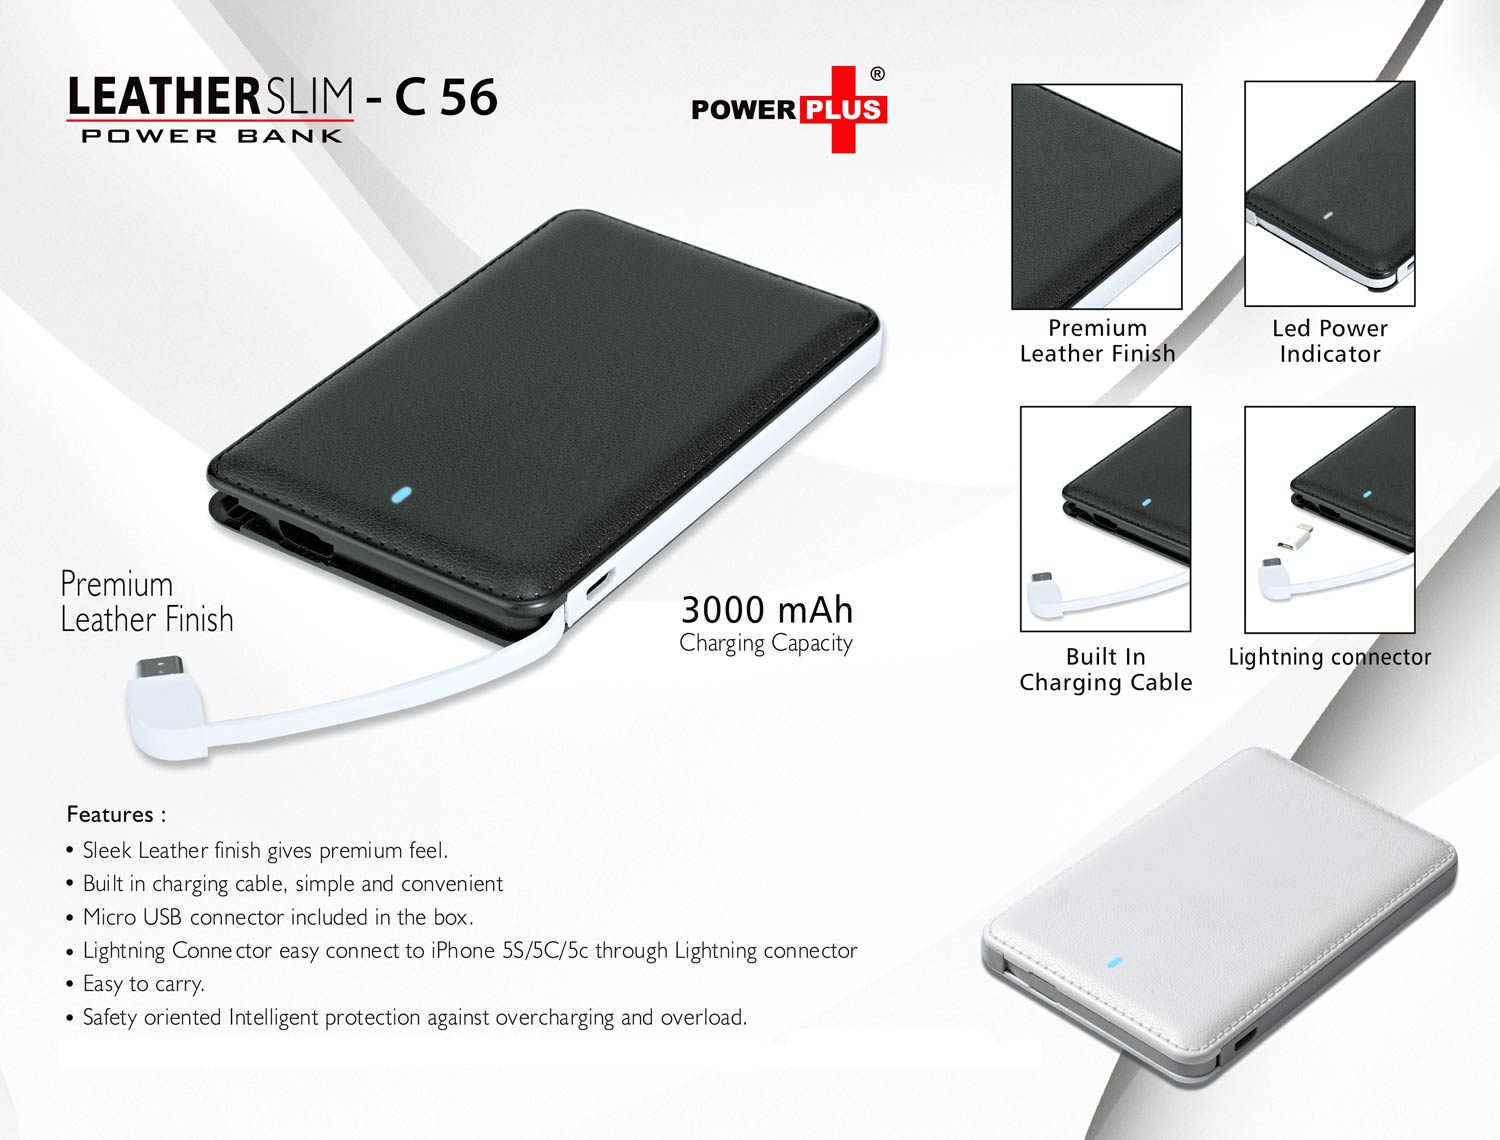 C56 - SLIM LEATHER POWER BANK (3,000 MAH)